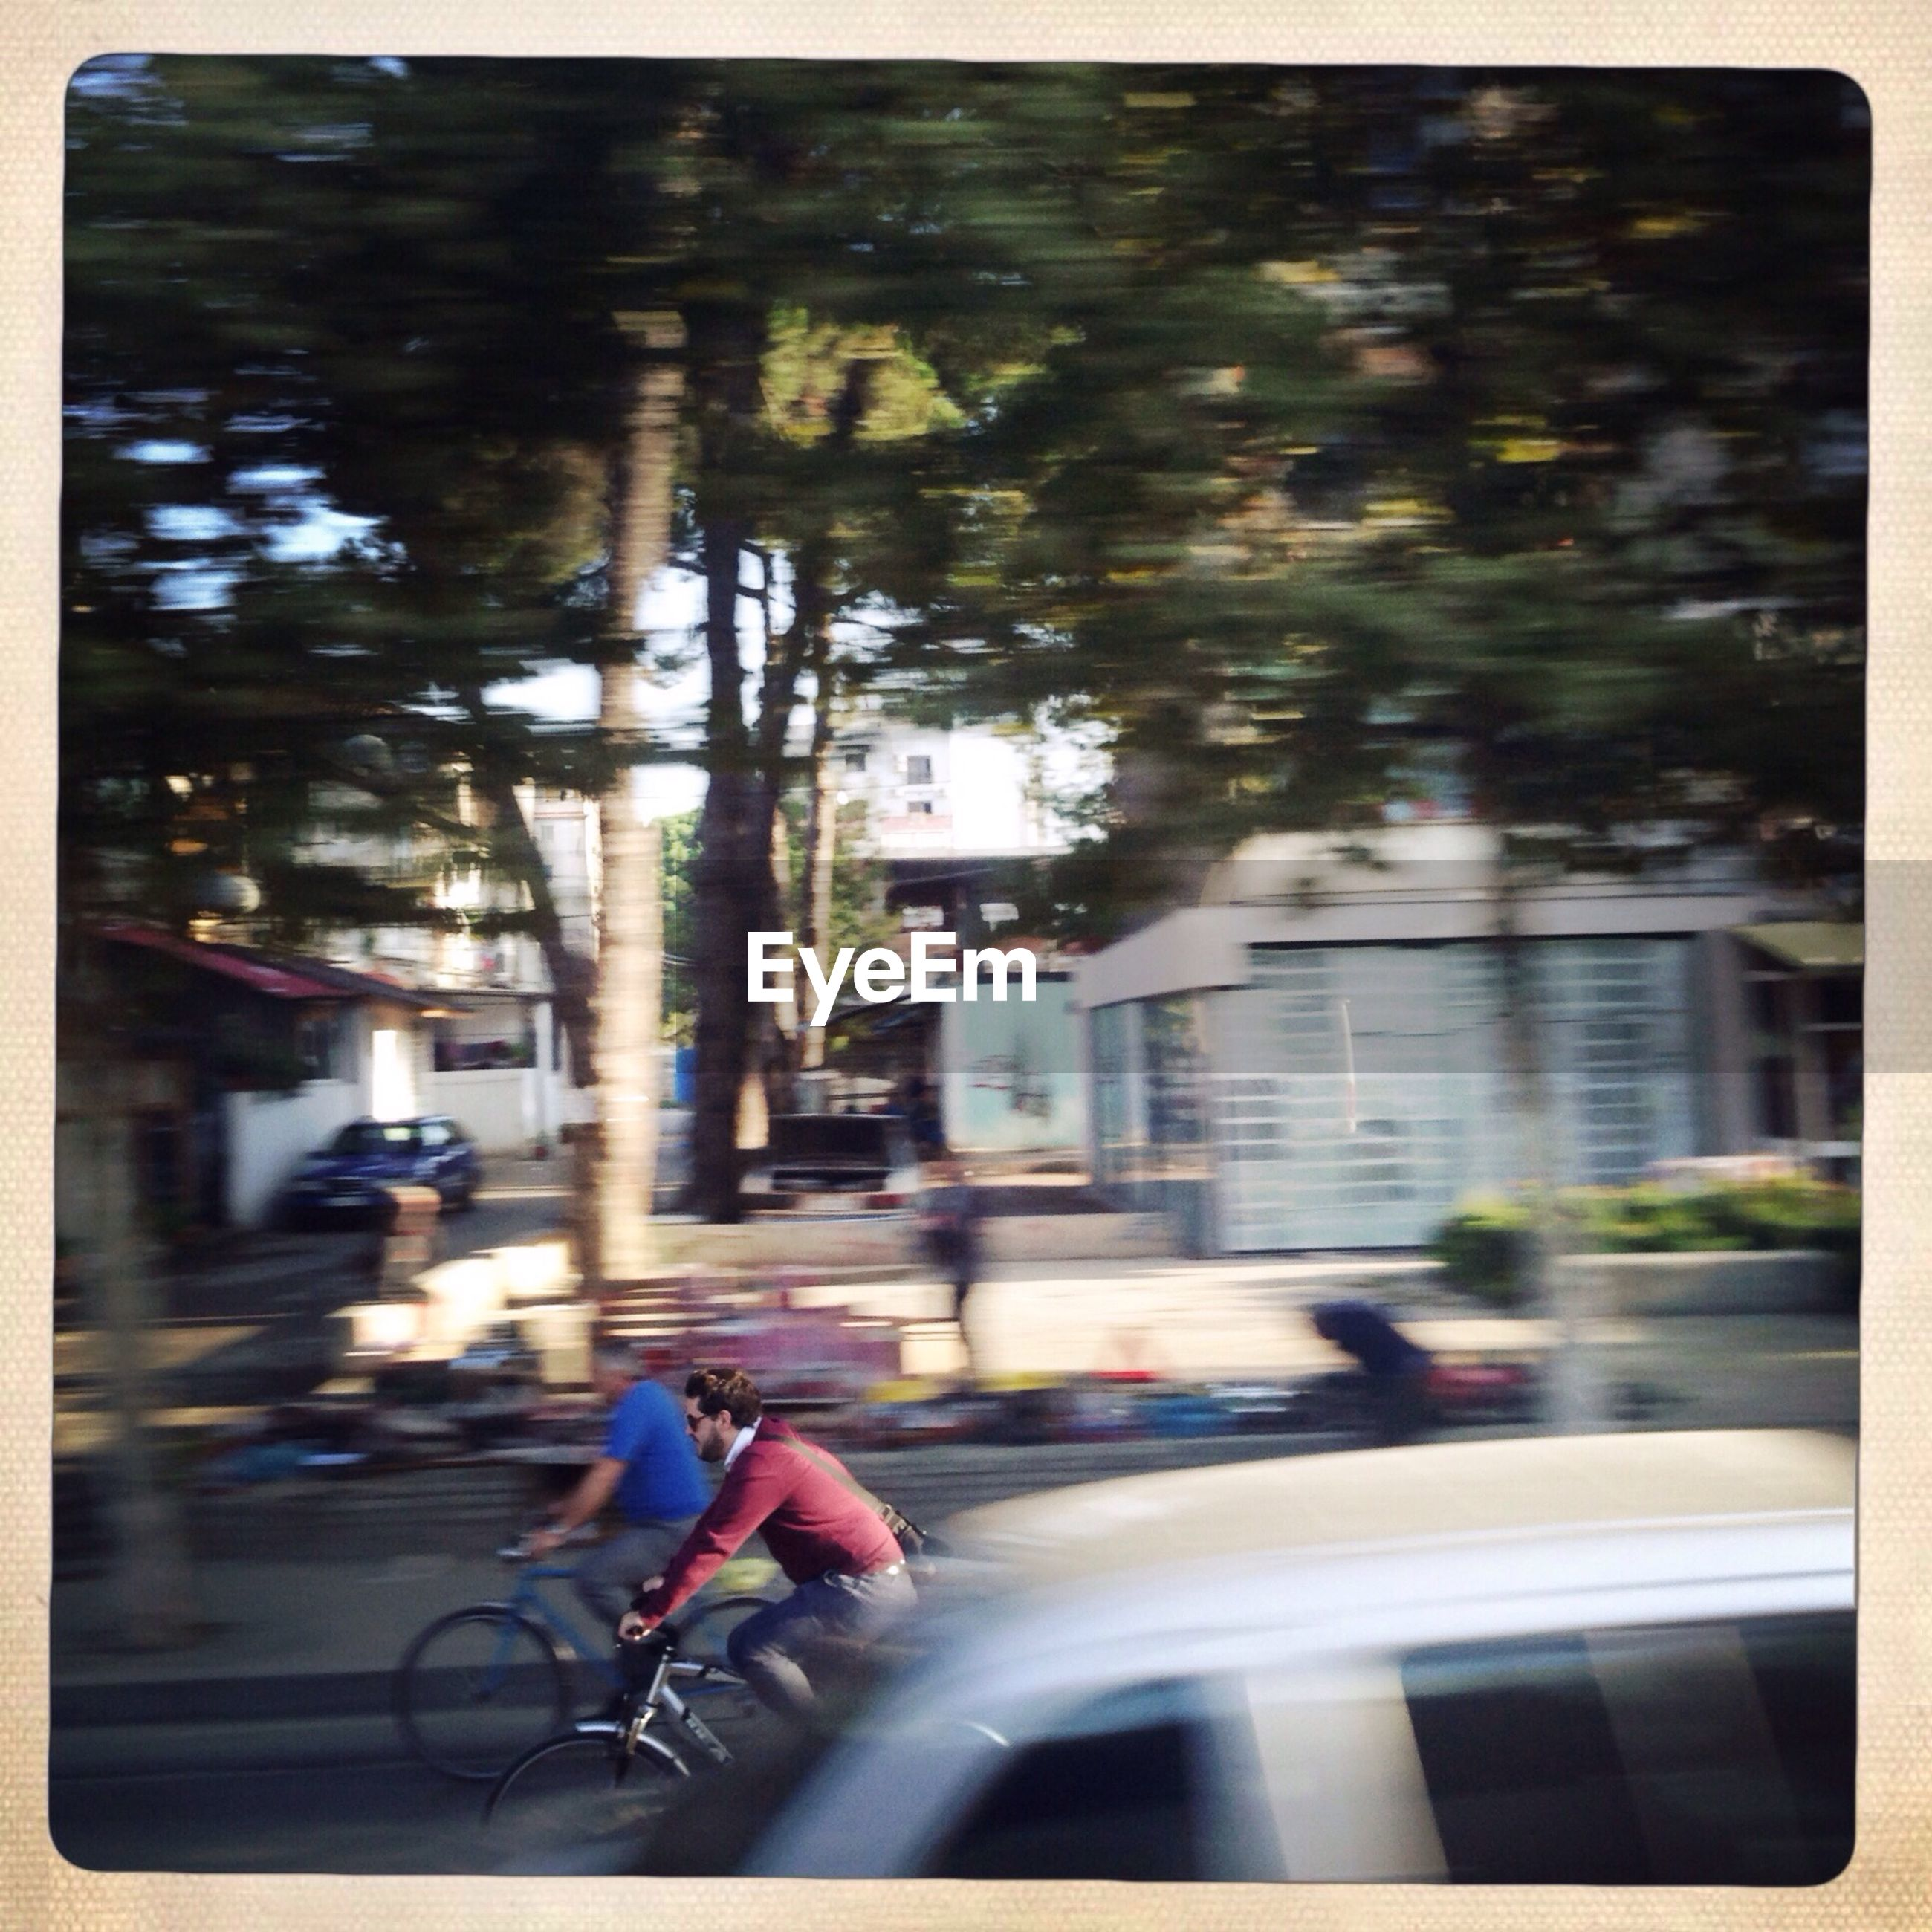 Blurred motion of people riding vehicles on street